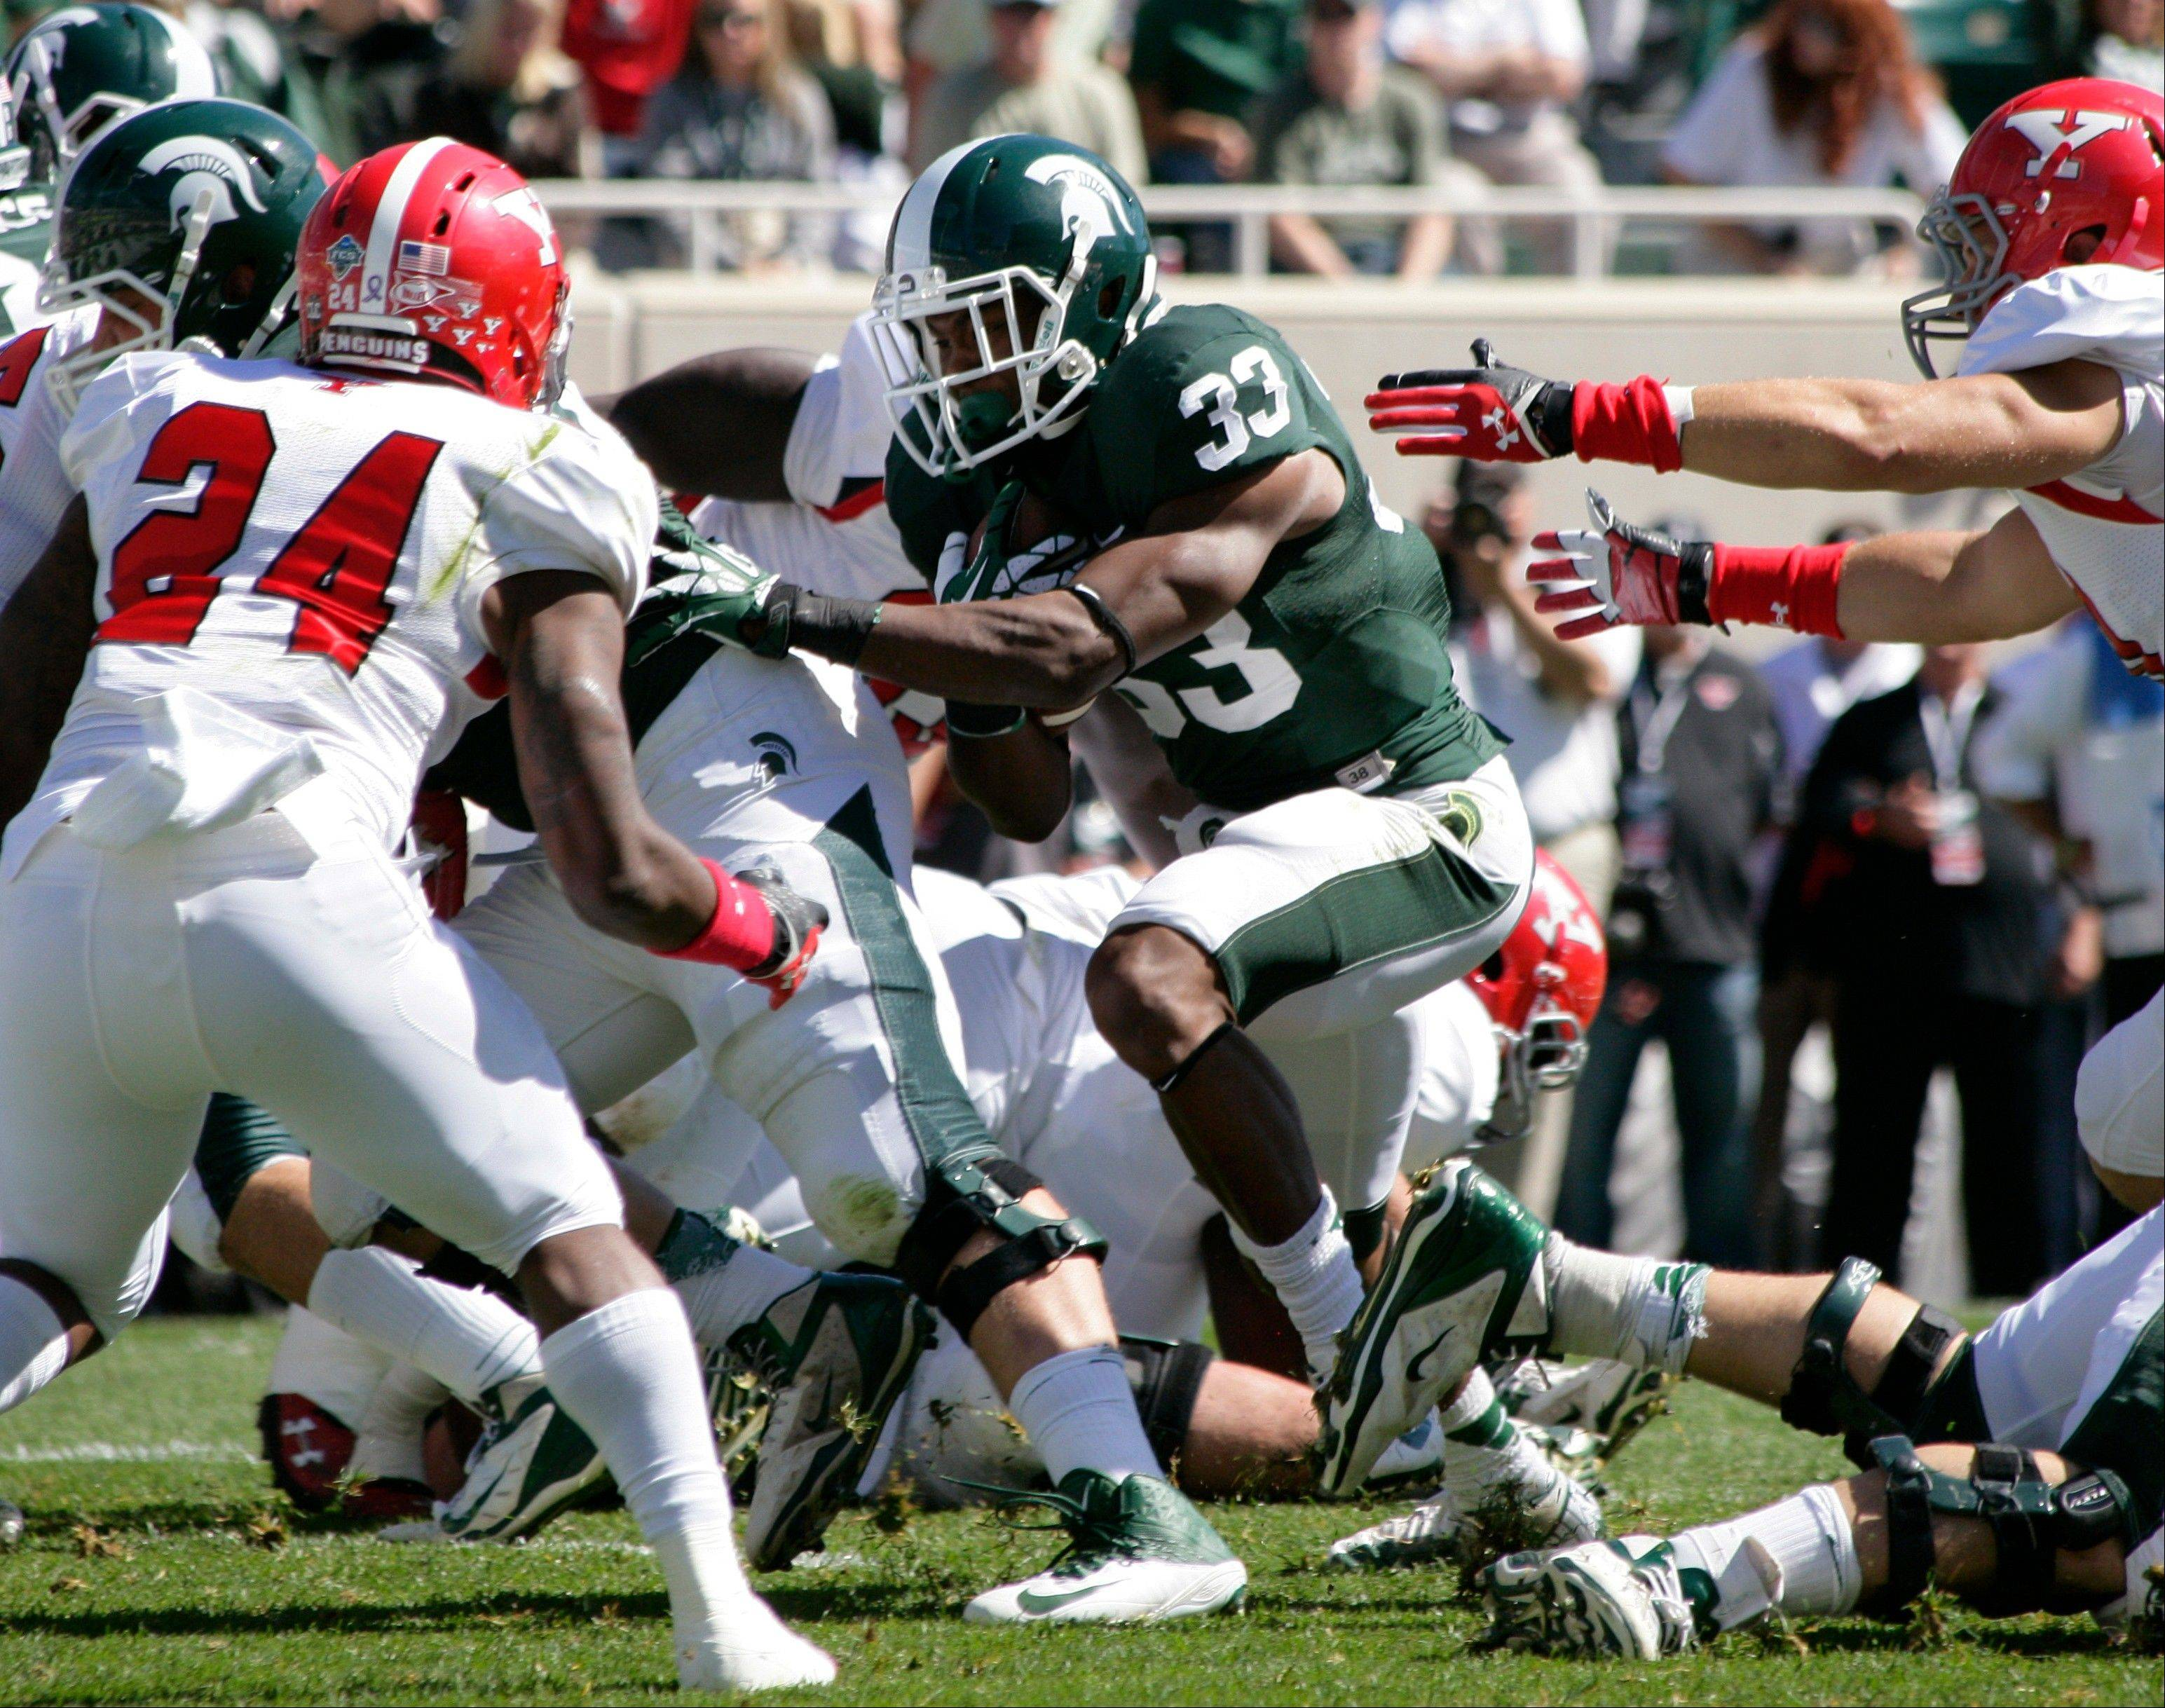 Michigan State's Jeremy Langford rushes for a touchdown against Youngstown State during last weekend's game in East Lansing, Mich.